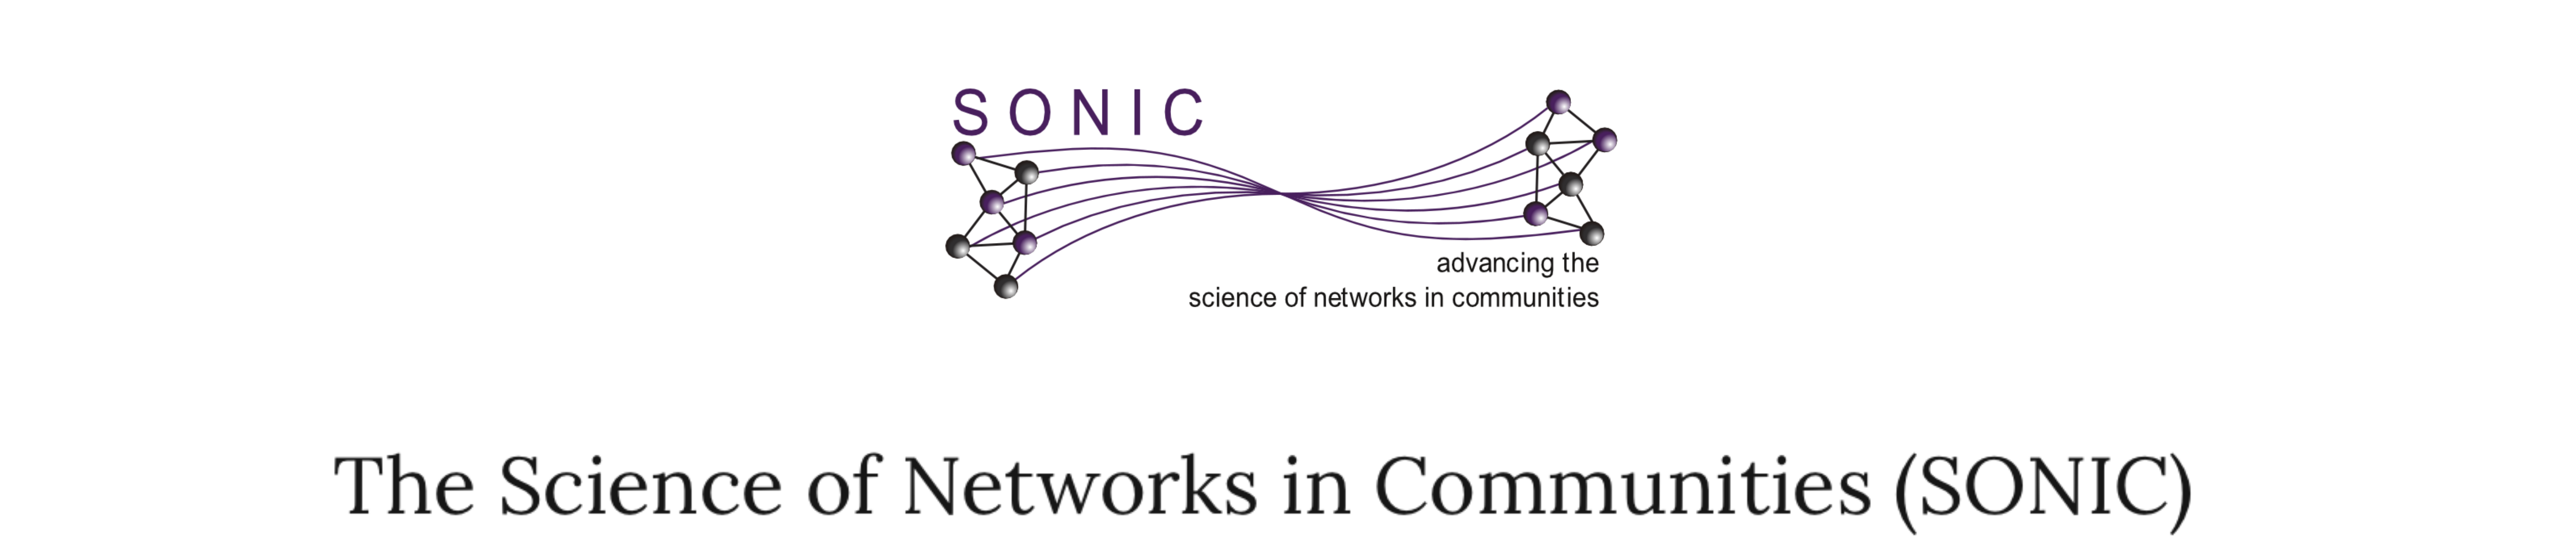 The Science of Networks in Communities (SONIC)